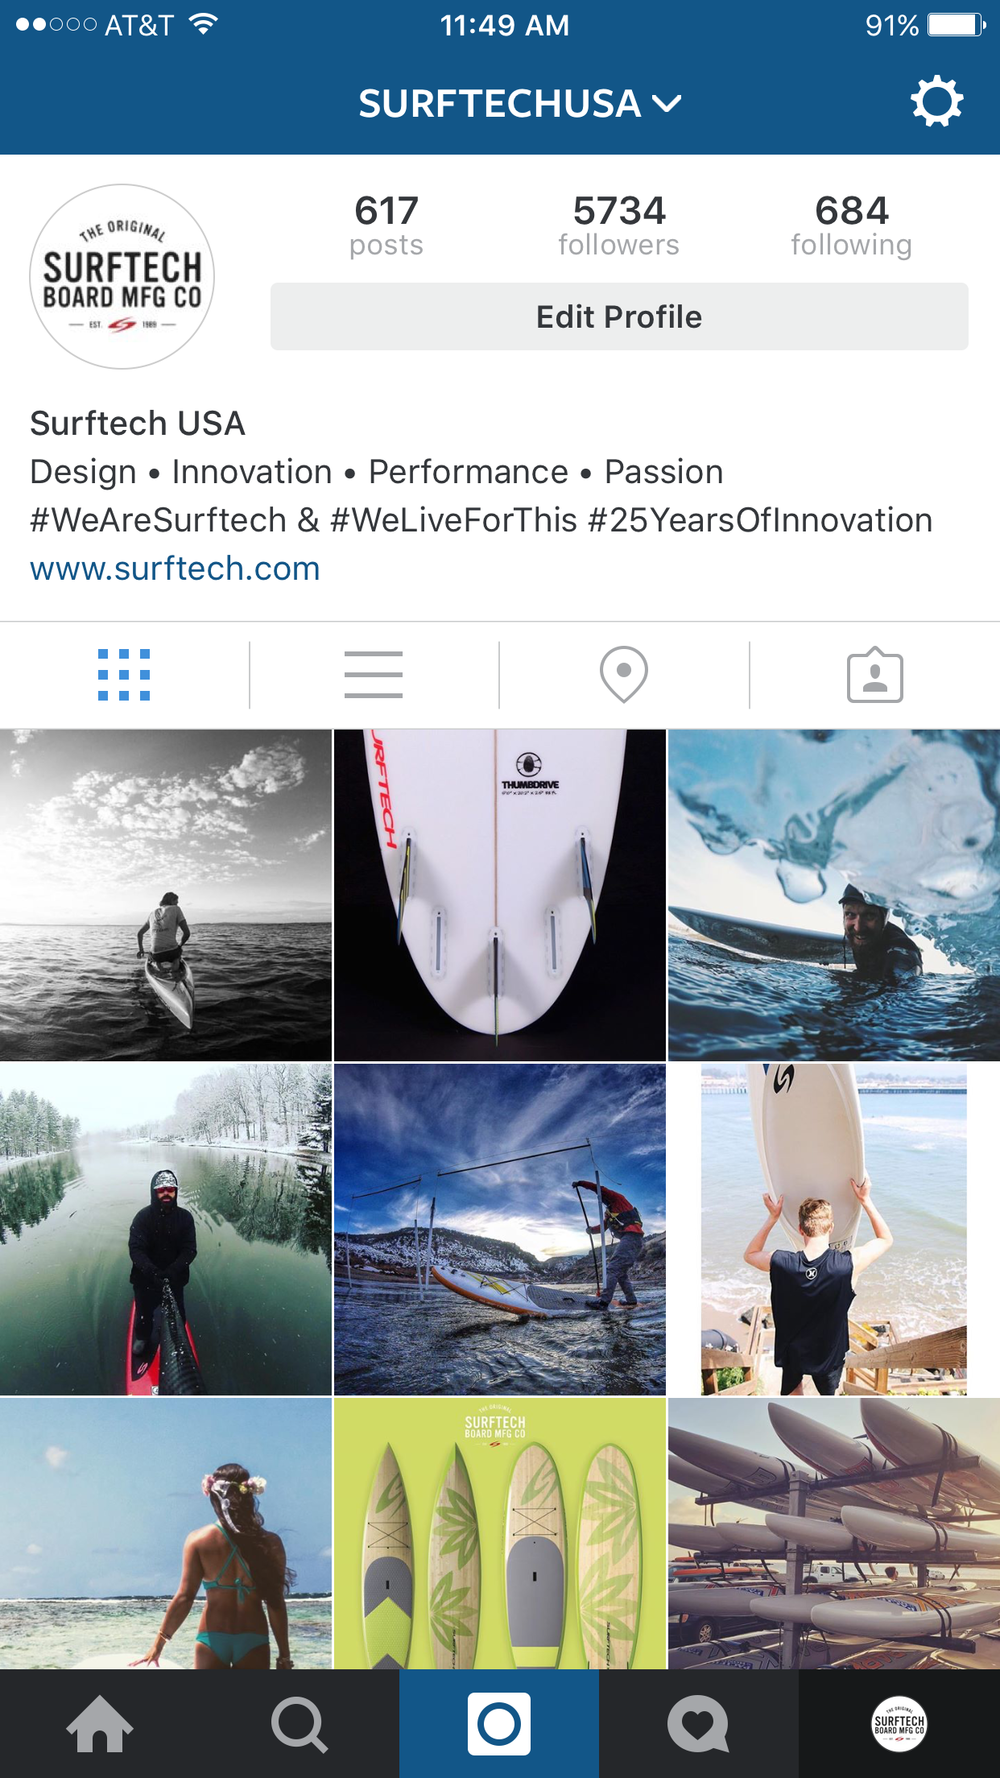 OFFICIAL ACCOUNT FOR SURFTECH